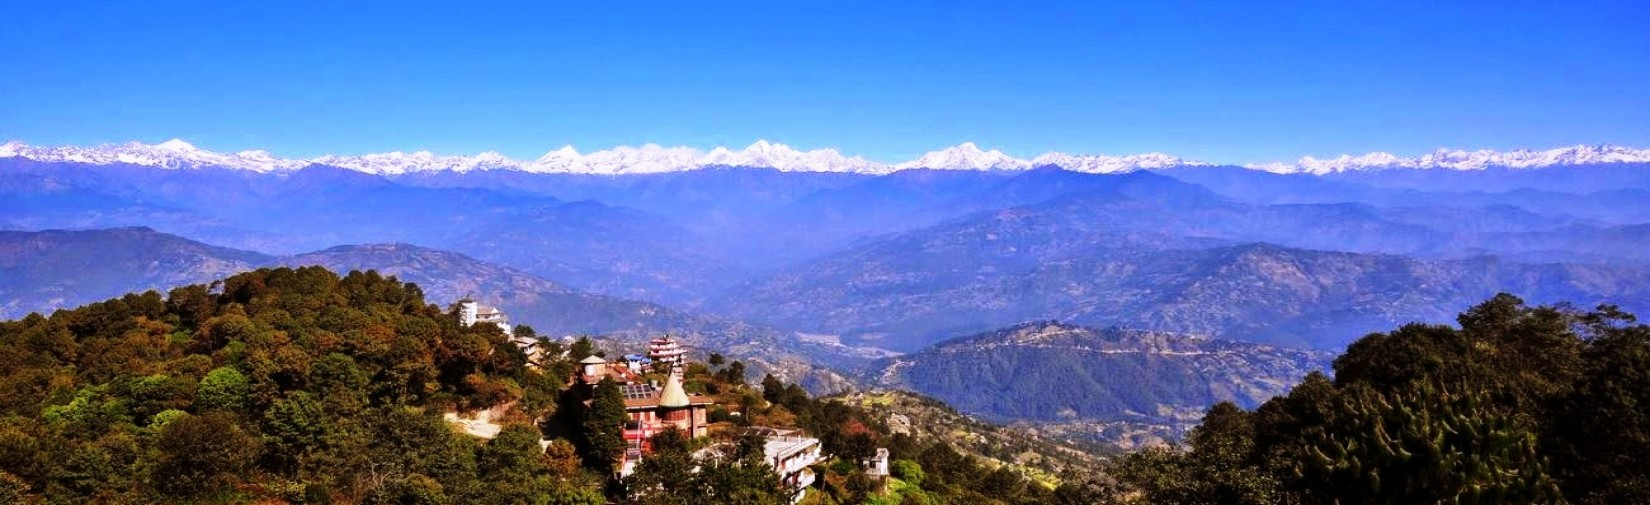 Nagarkot Changunarayan Hiking